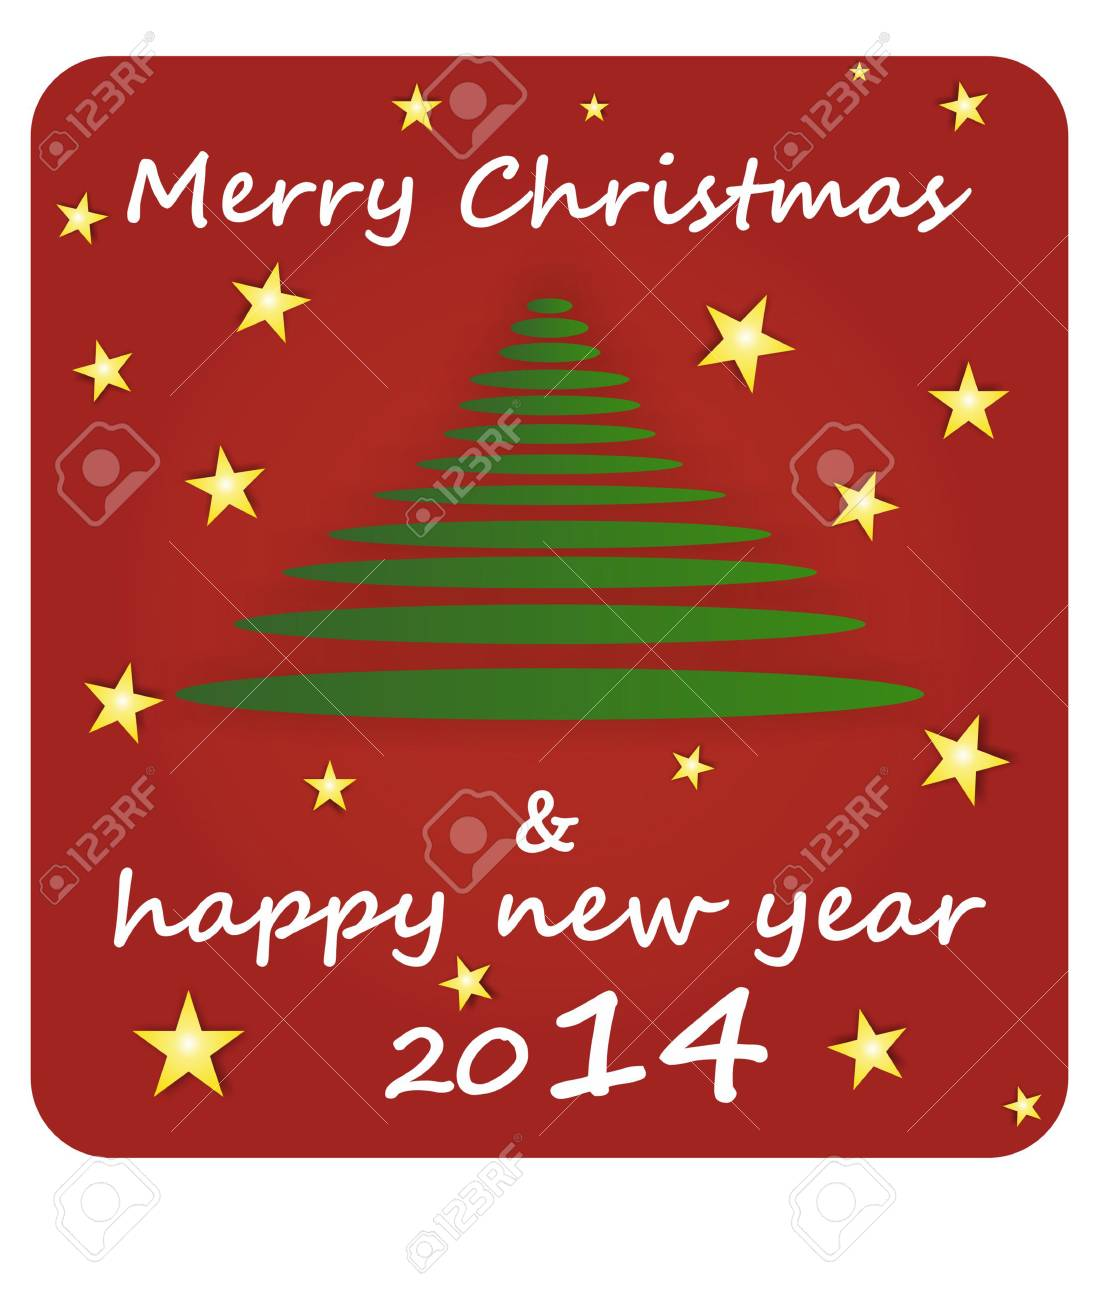 Merry Christmas And Happy New Year 2014 Royalty Free Cliparts ...